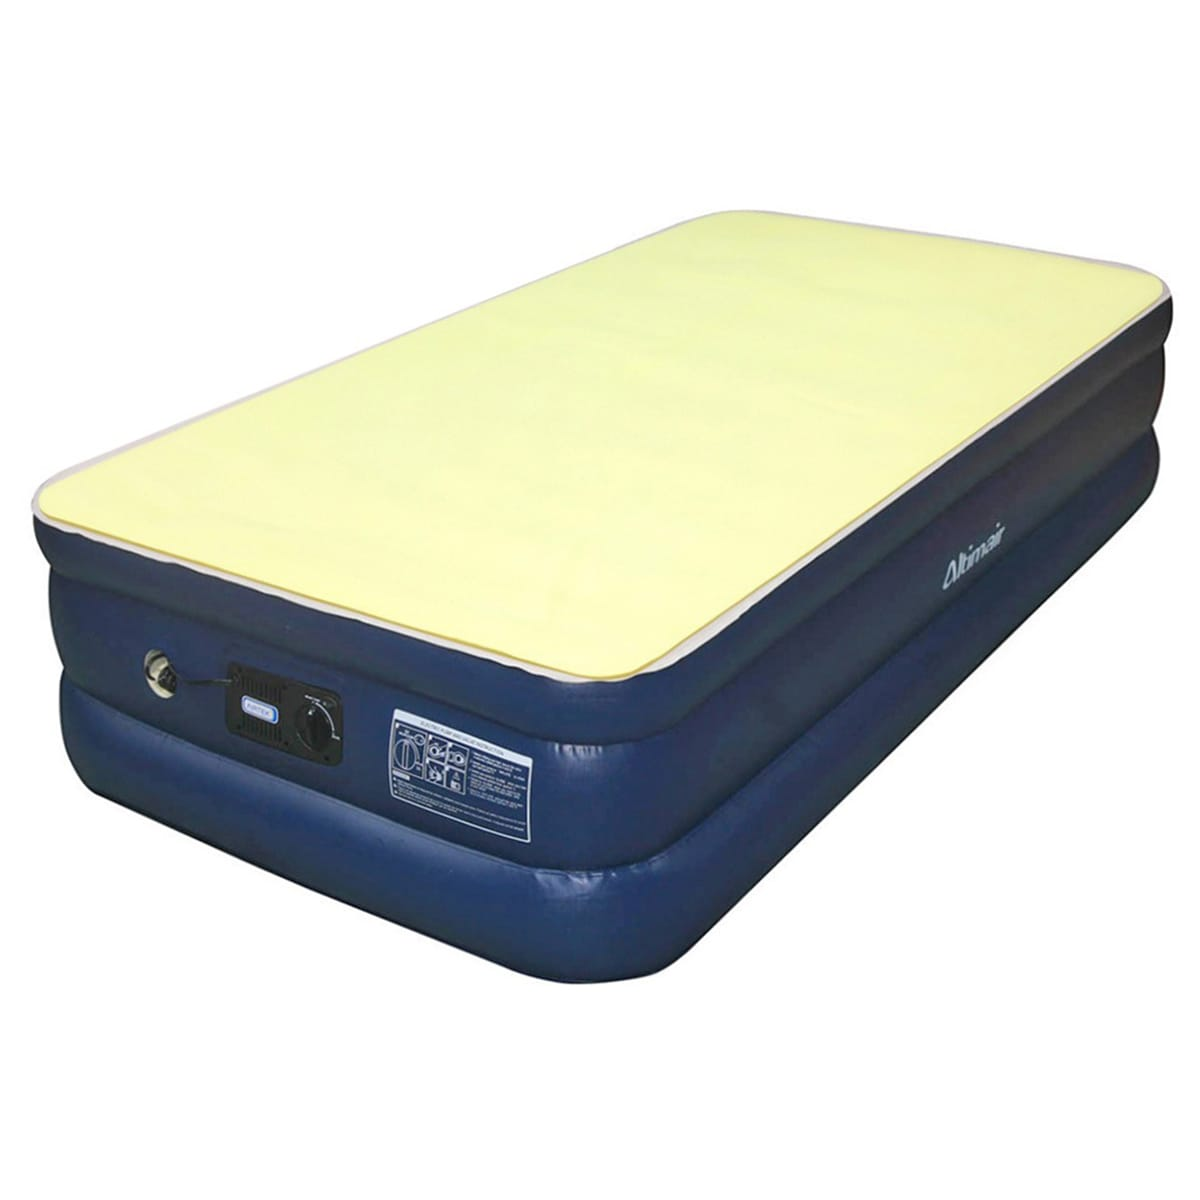 Airtek twin size flocked top air mattress with memory foam mattress topper overstock shopping Best deal on twin mattress